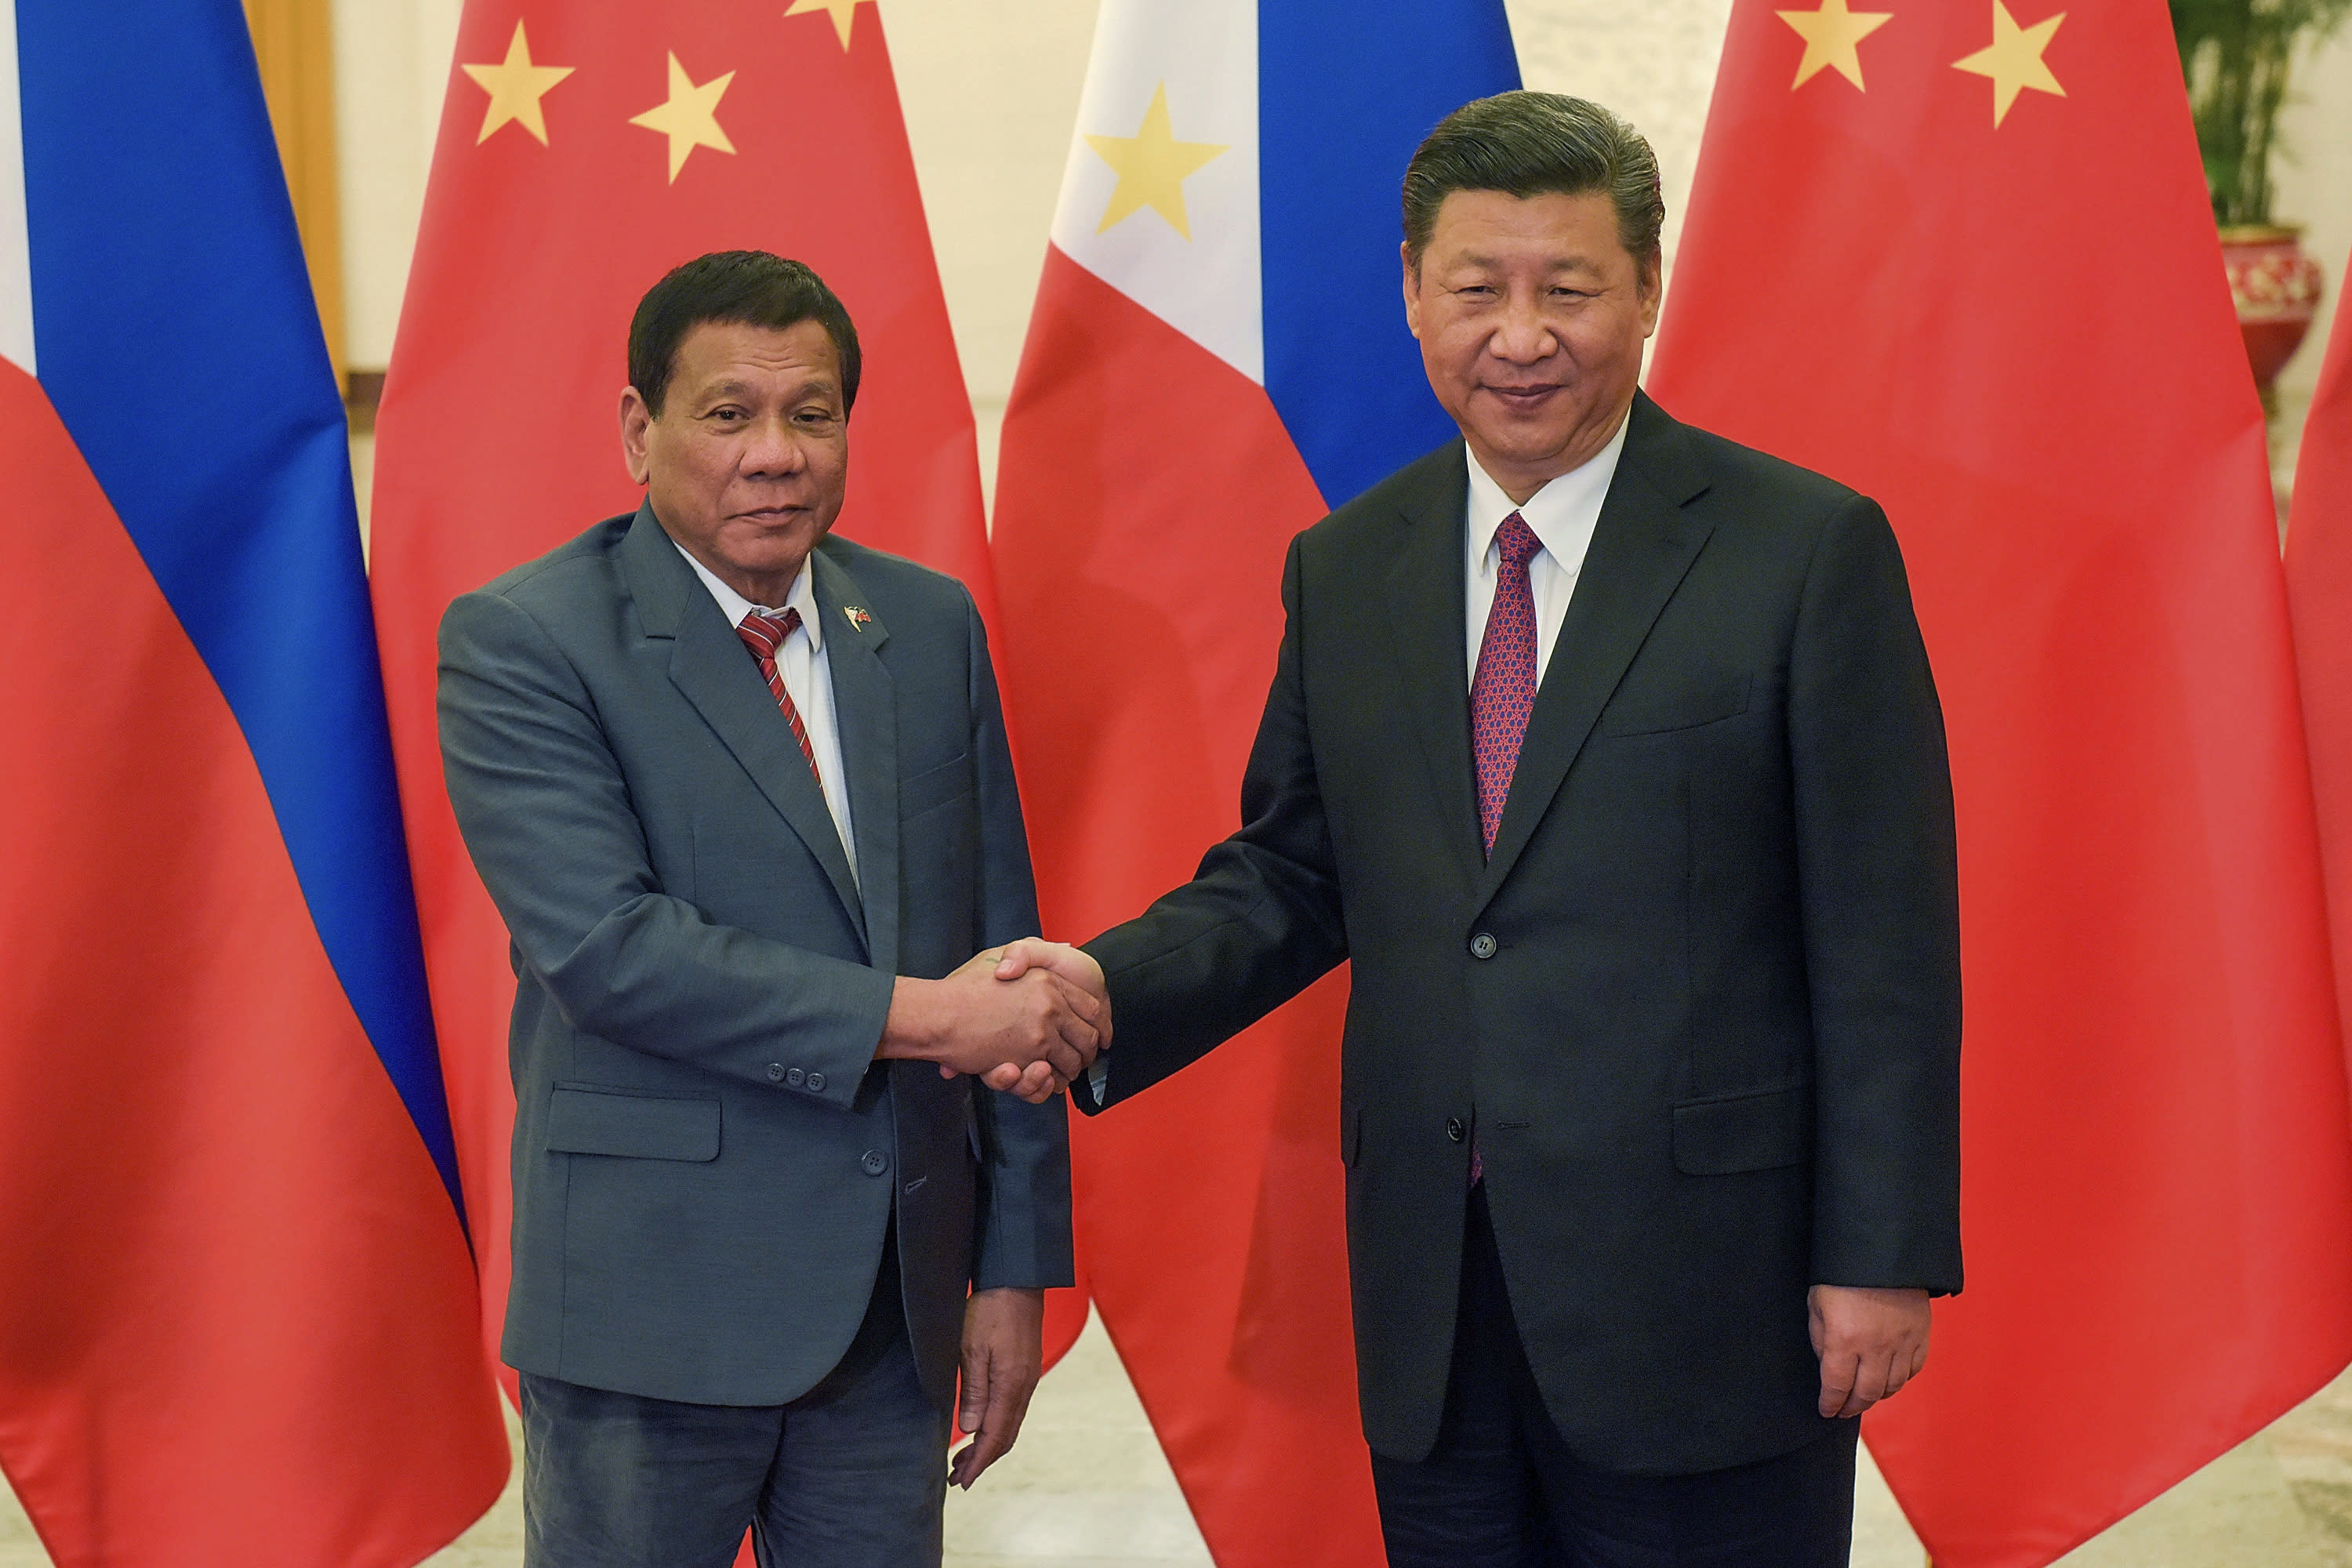 FILE - In this May 15, 2017, file photo, Philippine President Rodrigo Duterte, left, and Chinese President Xi Jinping pose for photographers prior to their bilateral meeting held on the sidelines of the Belt and Road Forum for International Cooperation at the Great Hall of the People in Beijing. Duterte is preparing to make his fifth visit to China later this month during which he says he will finally raise the result of the 2016 Hague arbitration on China's South China Sea claims amid a new spike in tensions. (Etienne Oliveau/Pool Photo via AP, File)